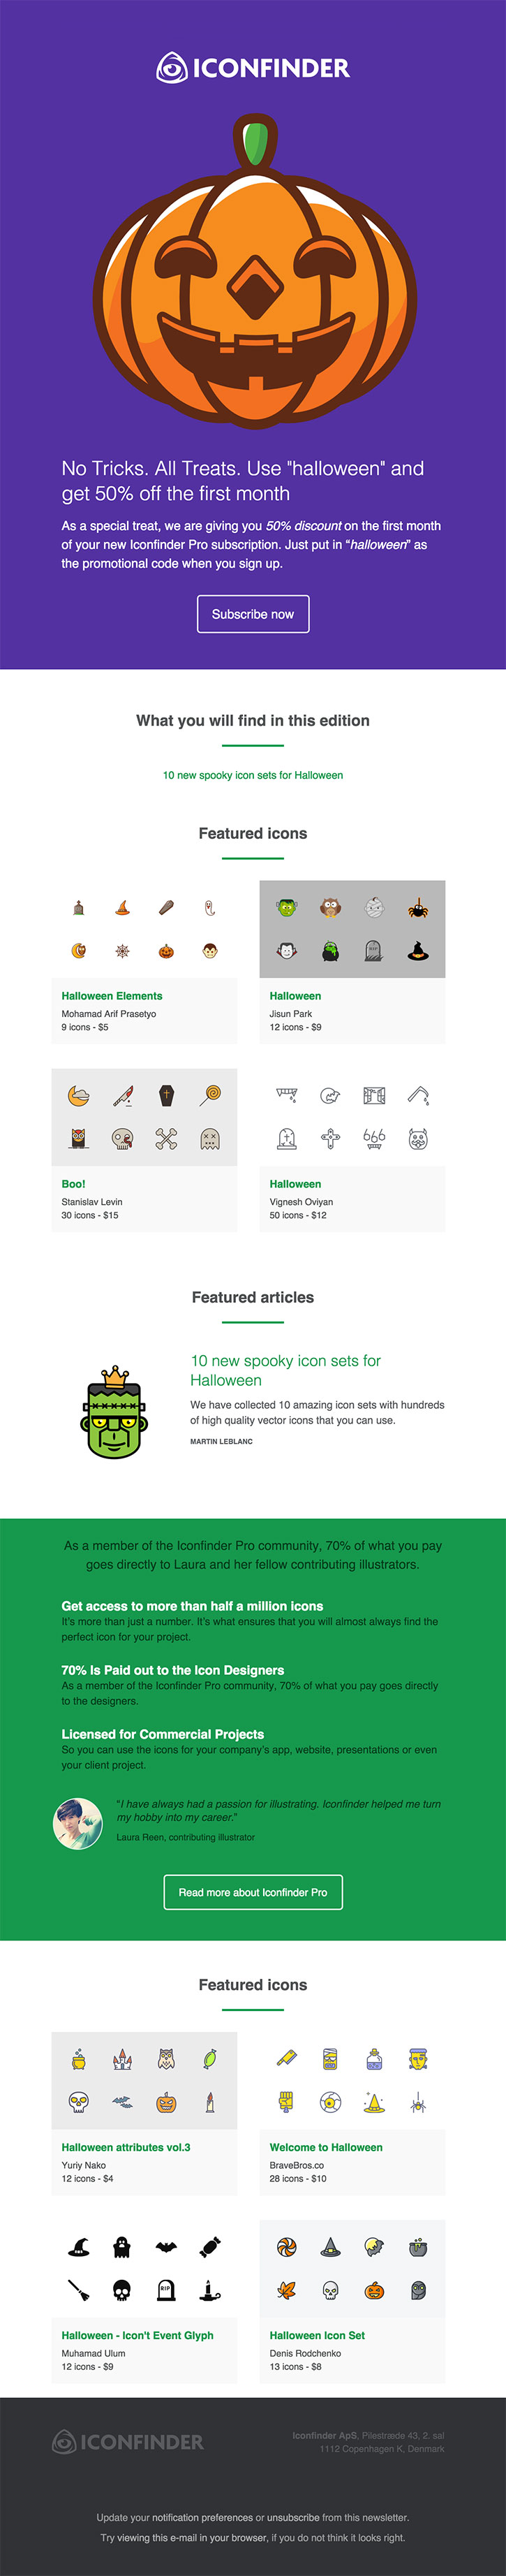 Halloween email design marketing